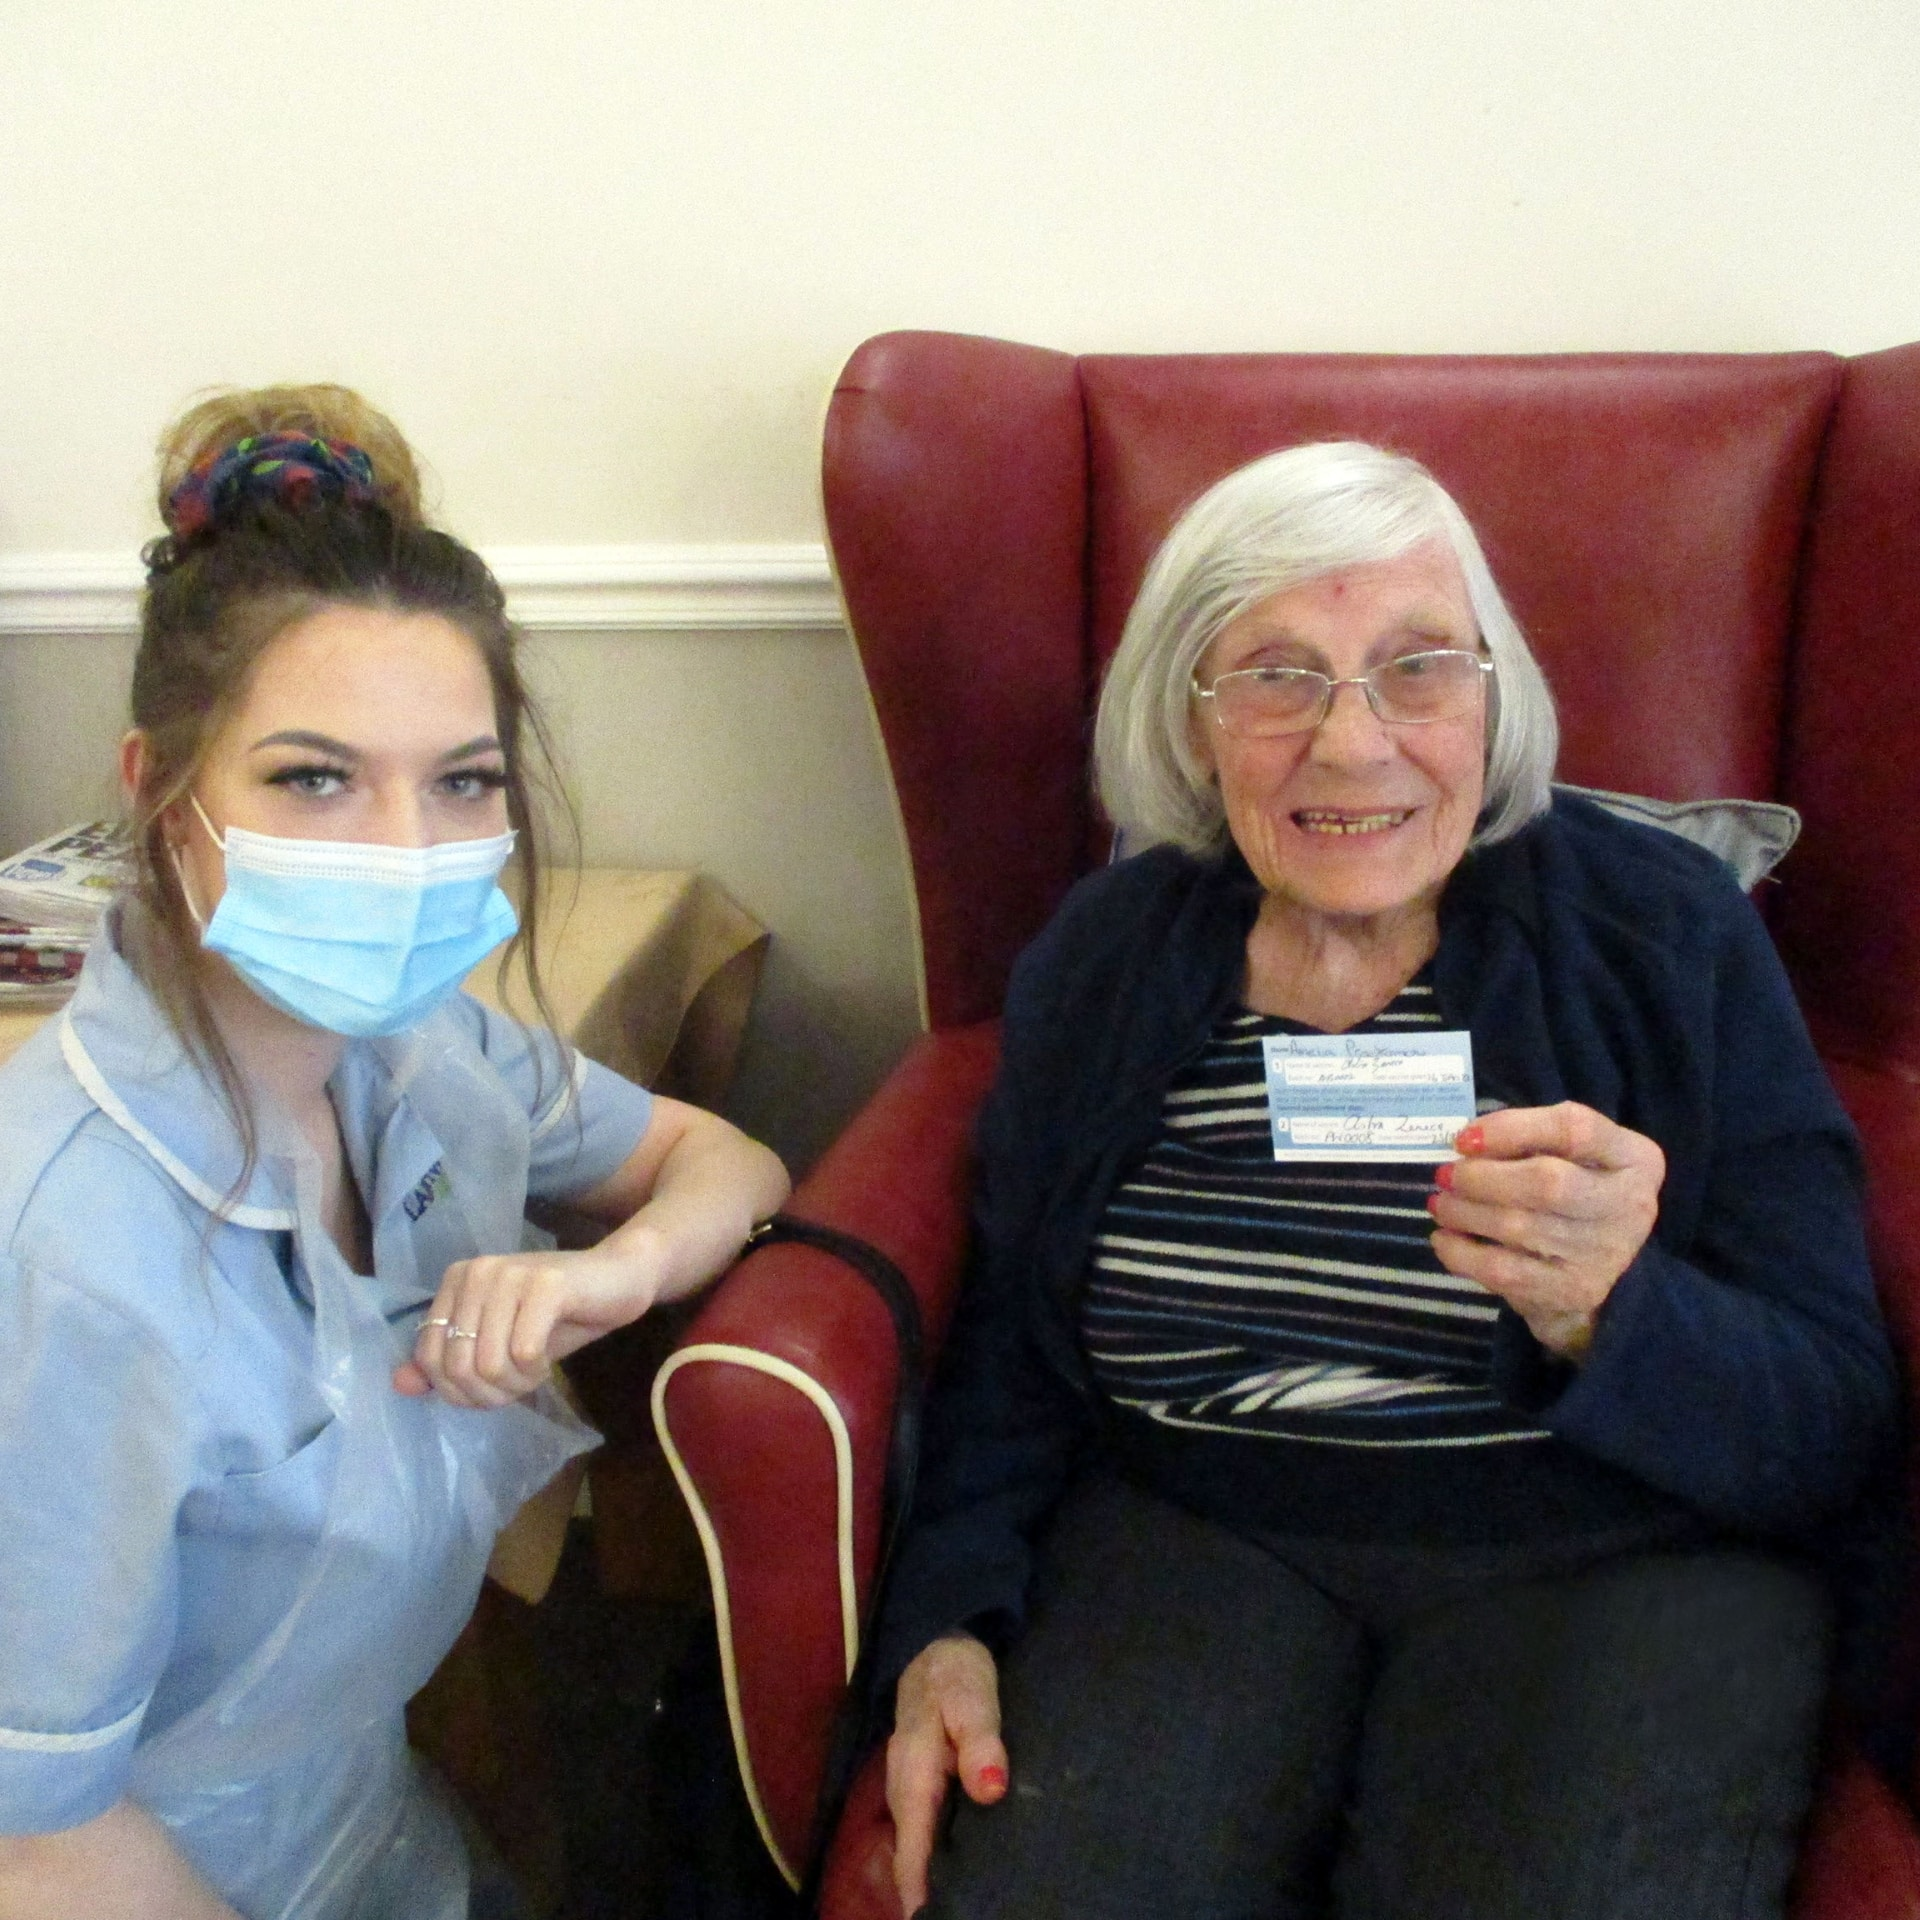 Ann Prodromou, aged 93, and Chantel Dickens, care assistant with Ann's Covid-19 vaccination card at Down Market-based care home Diamond House.